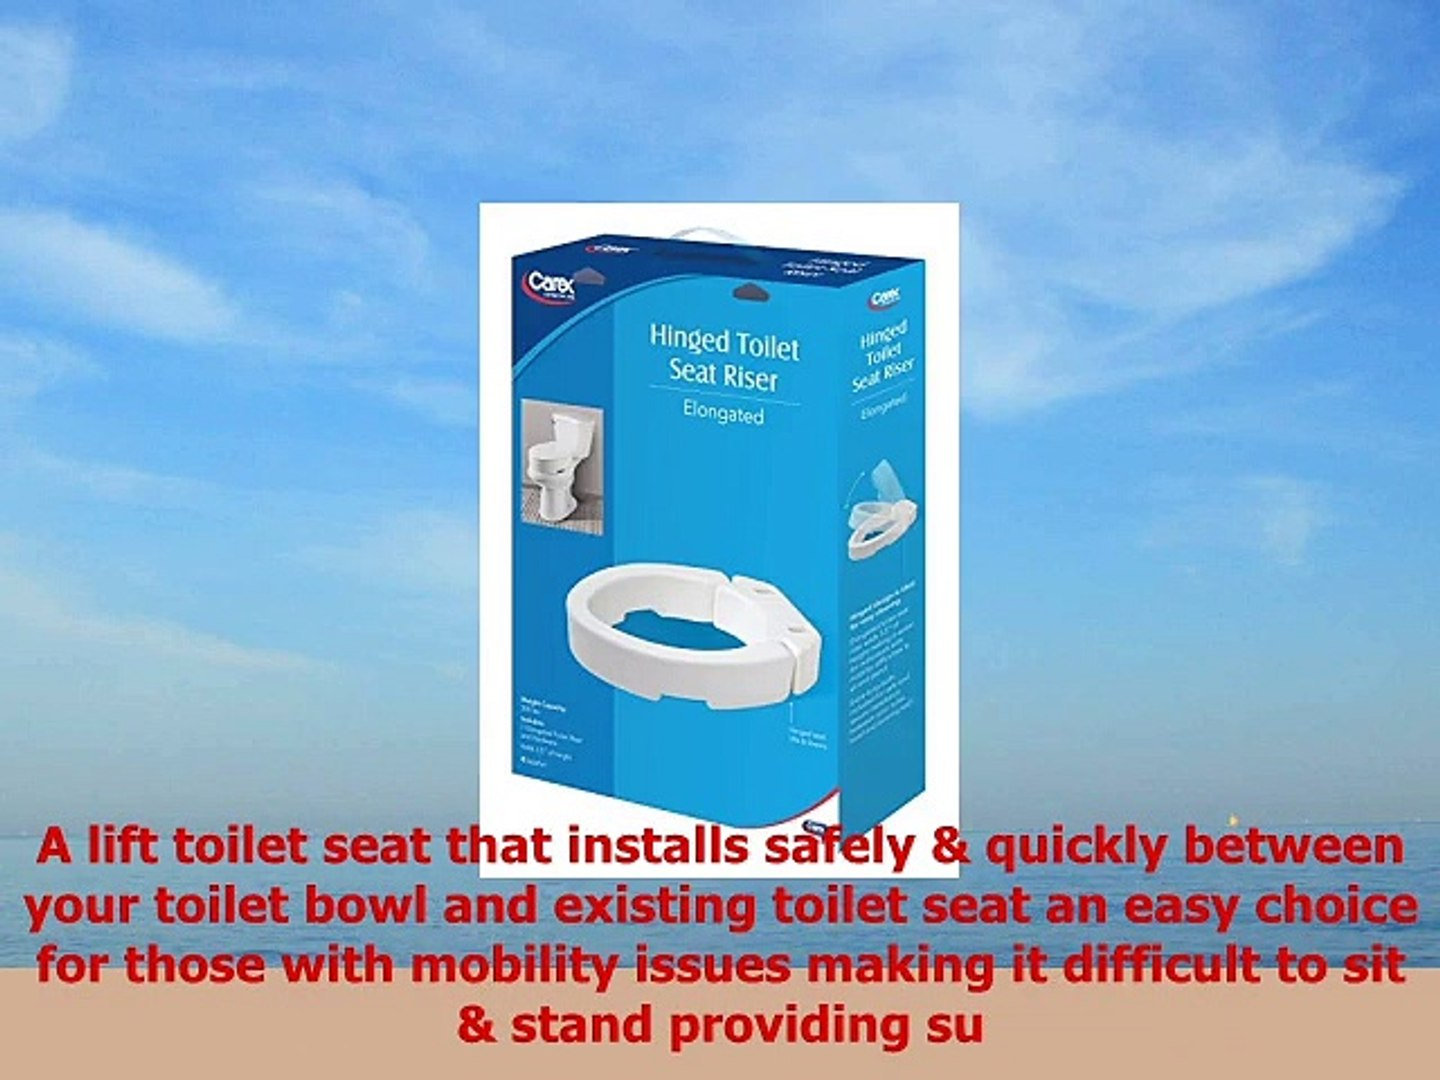 Phenomenal Carex Elongated Hinged Toilet Seat Riser Adds 35 Inches Of Toilet Lift 300 Pound Weight Pdpeps Interior Chair Design Pdpepsorg